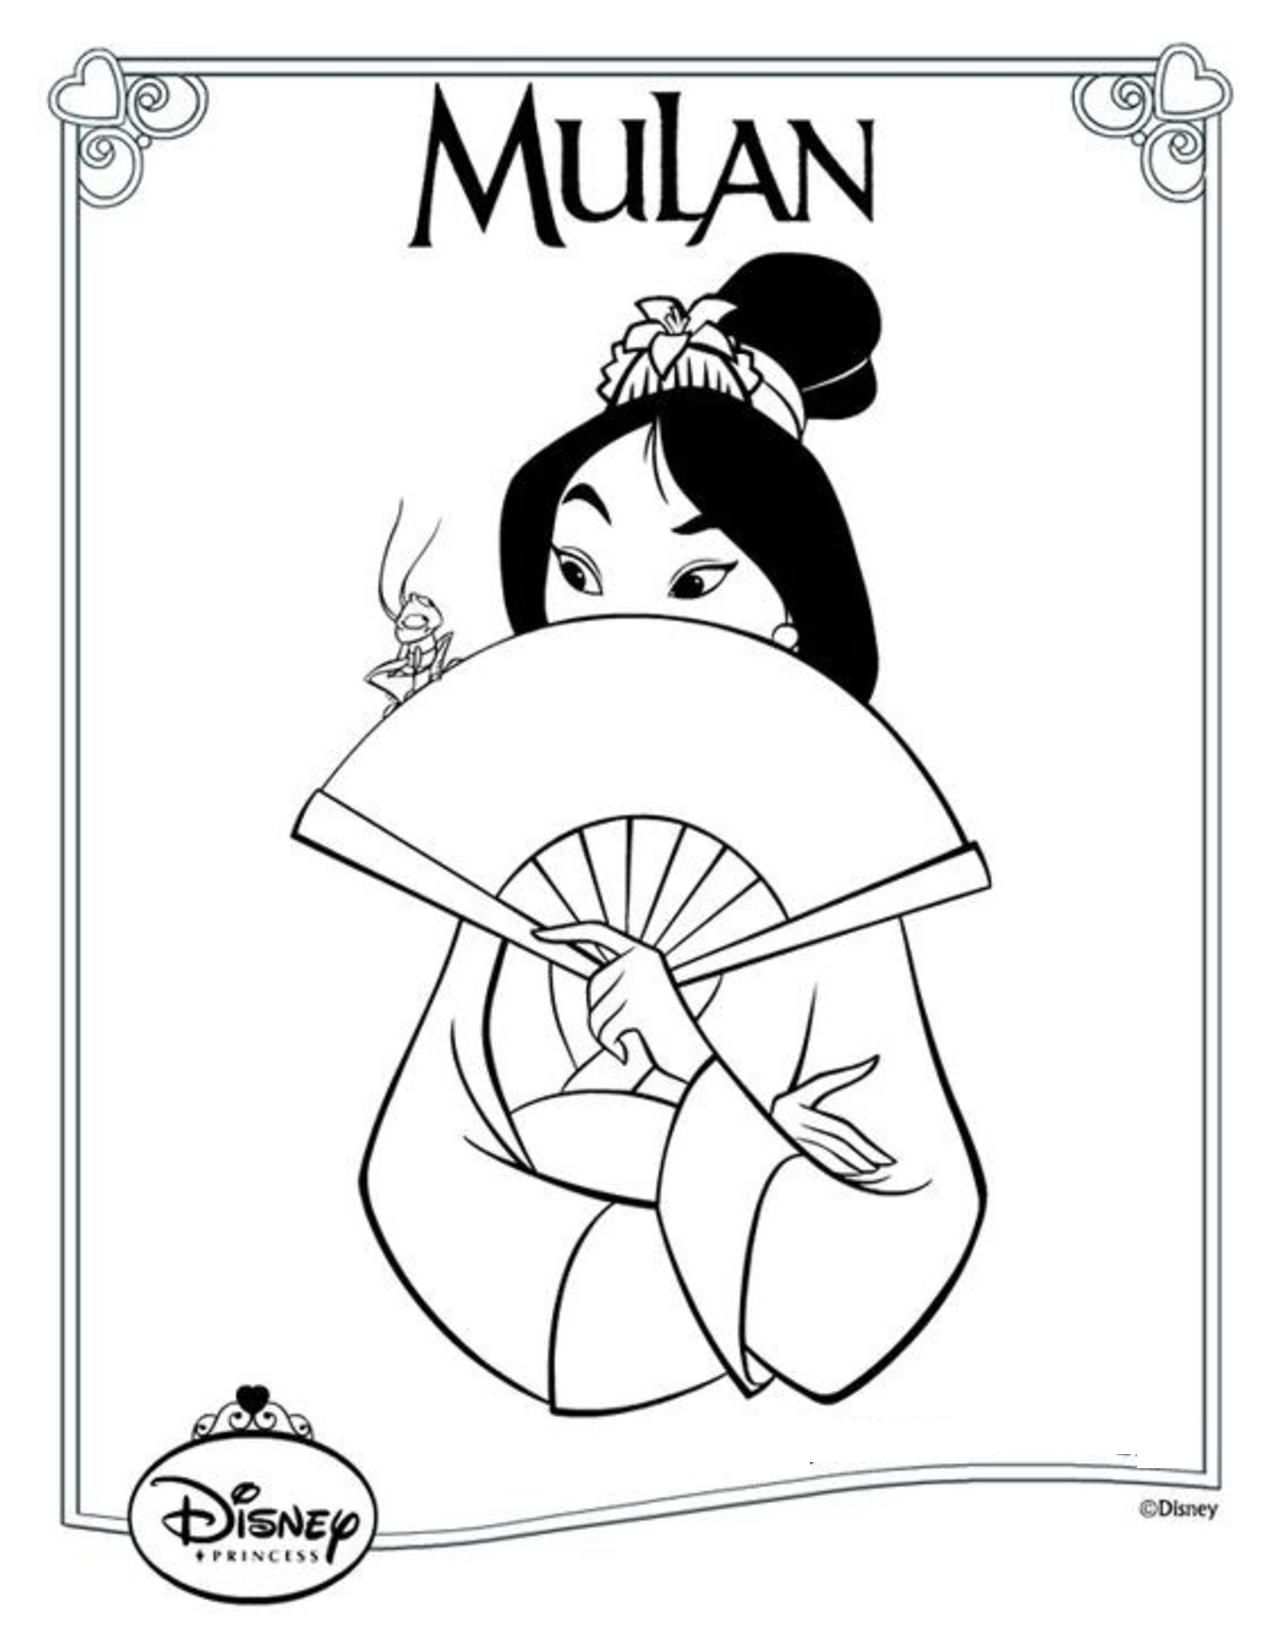 Pin on Disney Coloring Pages: Movie Covers